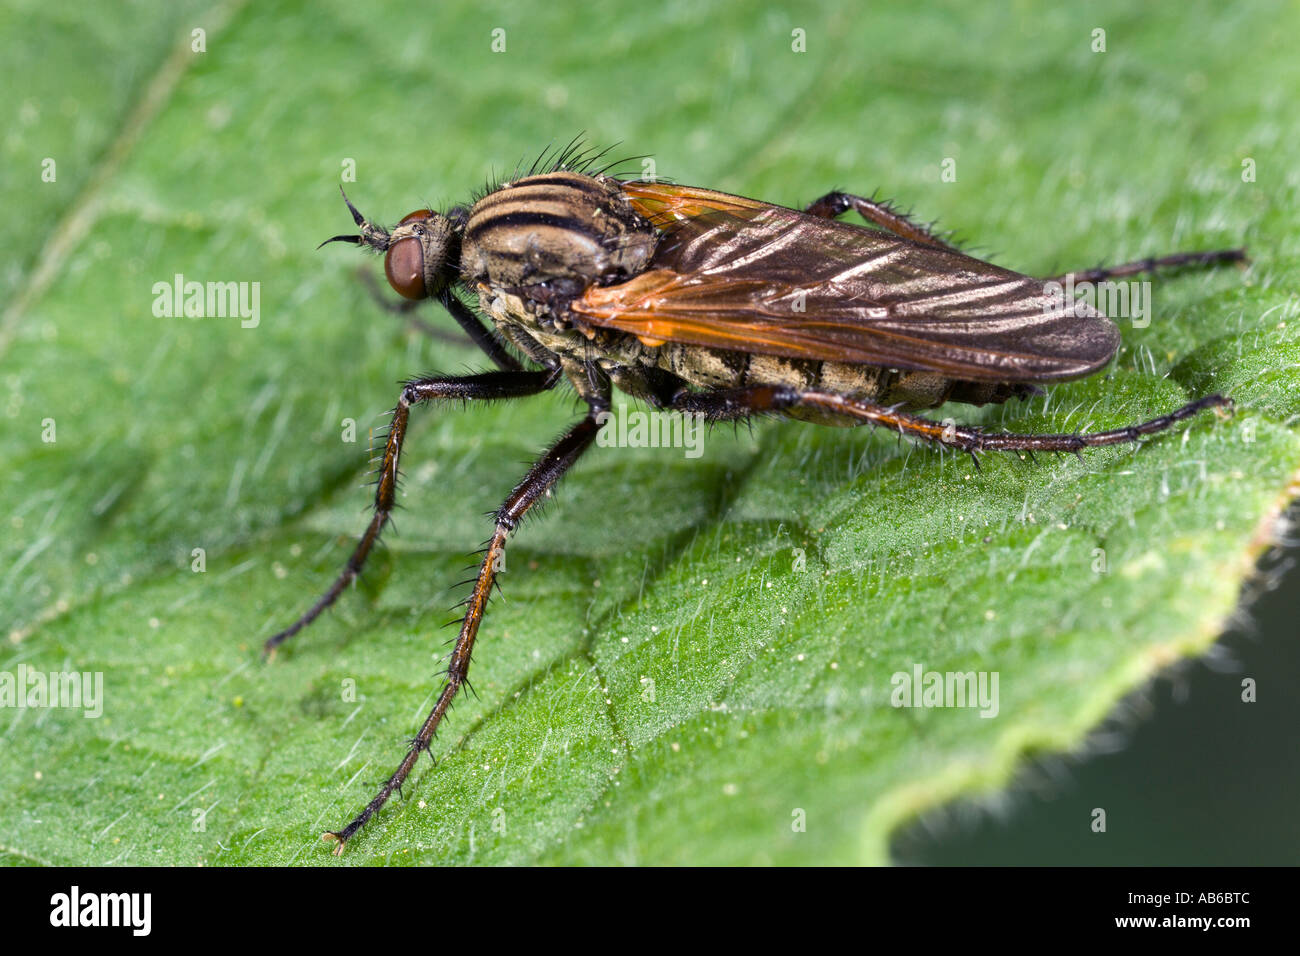 Empis tessellata dance flie on leaf showing detail and markings potton bedfordshire Stock Photo